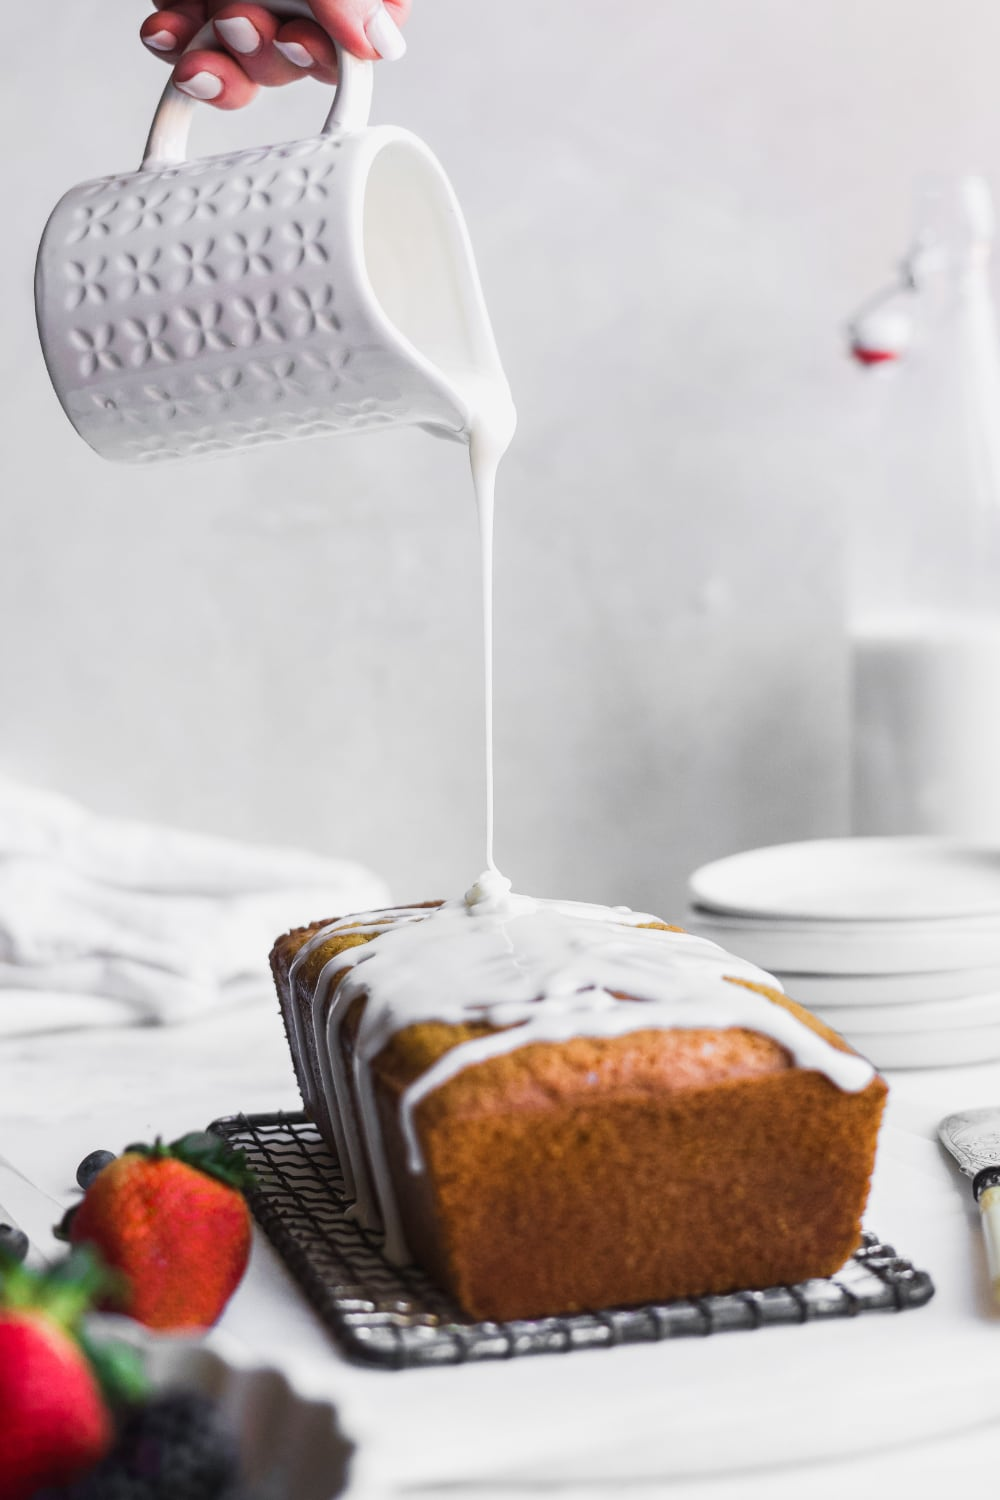 whole pound cake with vanilla icing being poured overtop